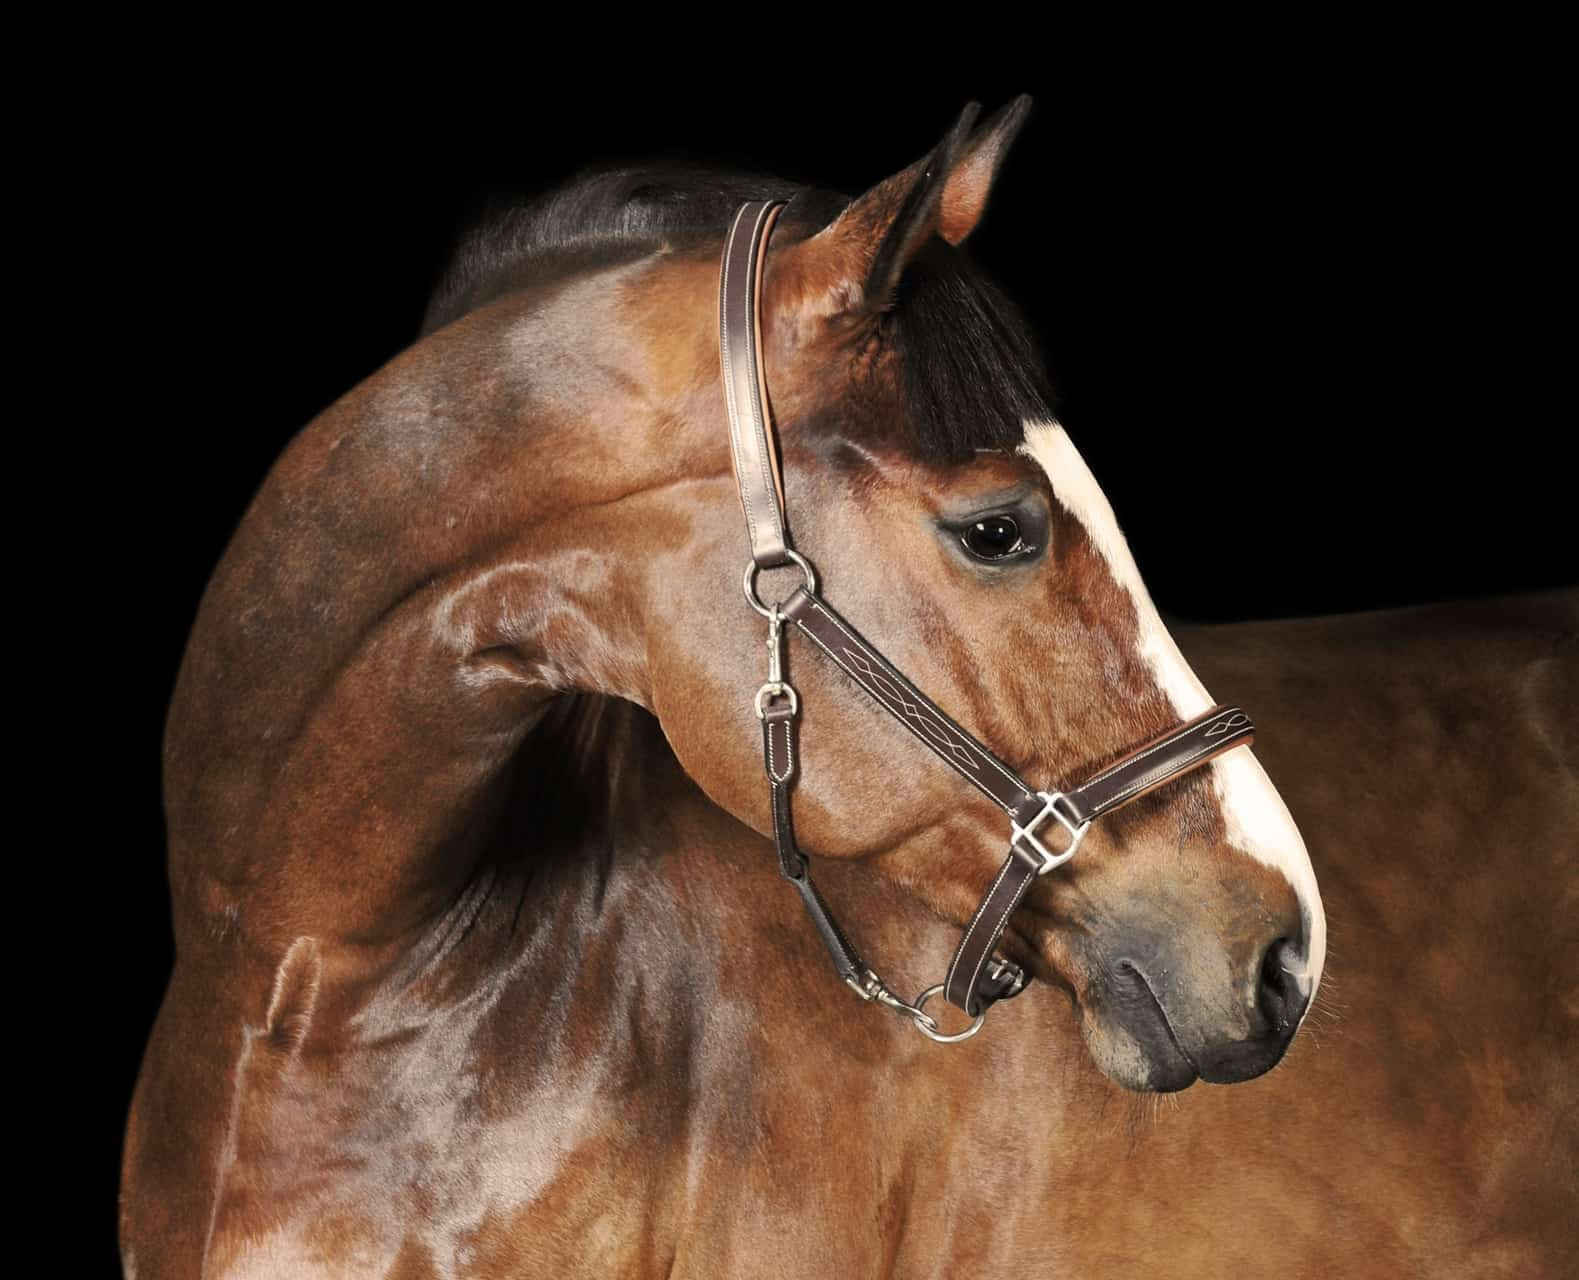 Bony Changes in the Equine Neck – The Horse